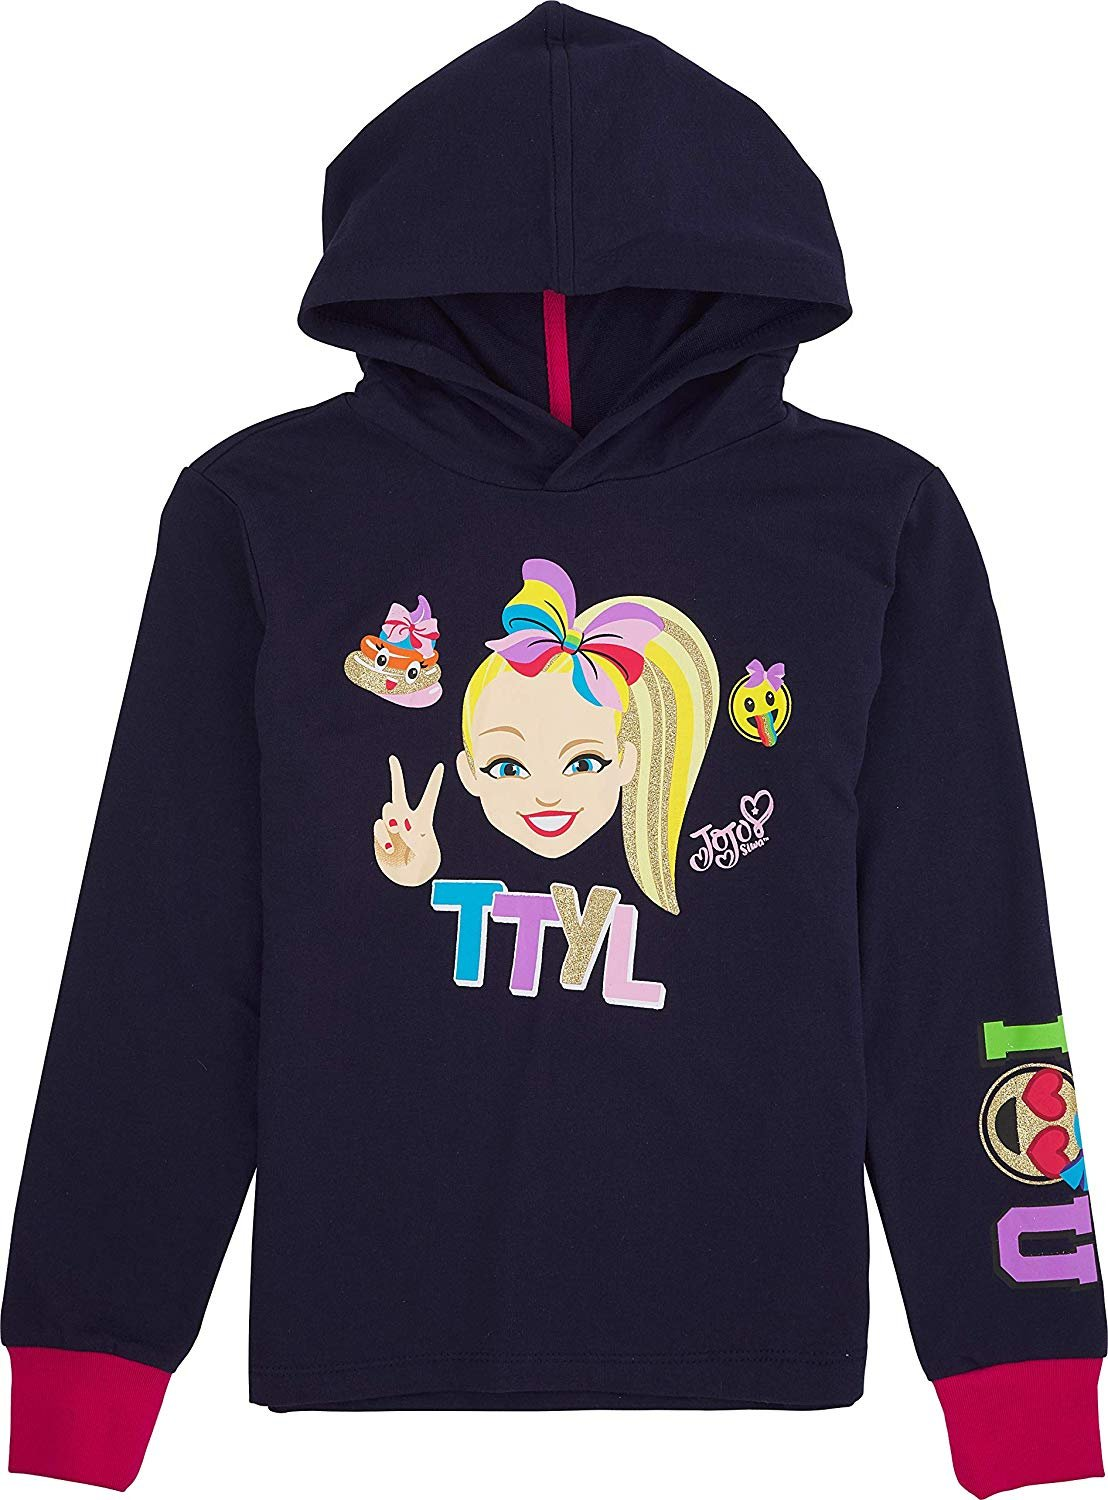 ... JoJo Siwa Graphic Cold Shoulder Hoodie Top and Legging 3-Piece Outfit Set